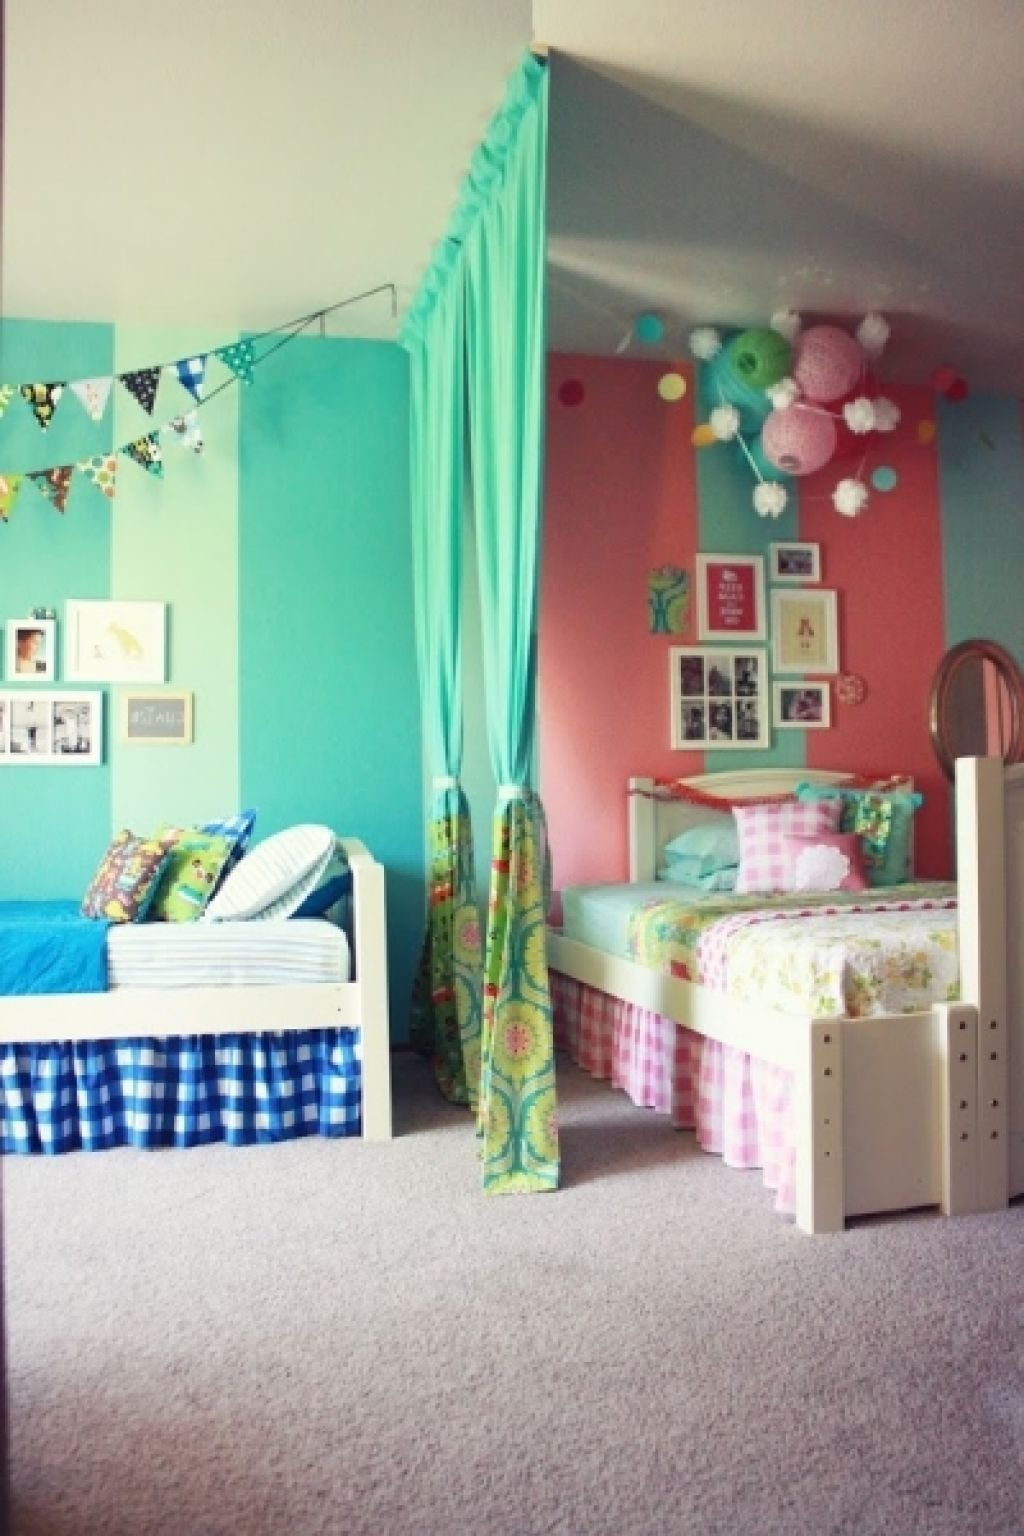 10 Gorgeous Girl And Boy Room Ideas bedroom imposing boy and girl bedroom ideas on shared room all done 2020